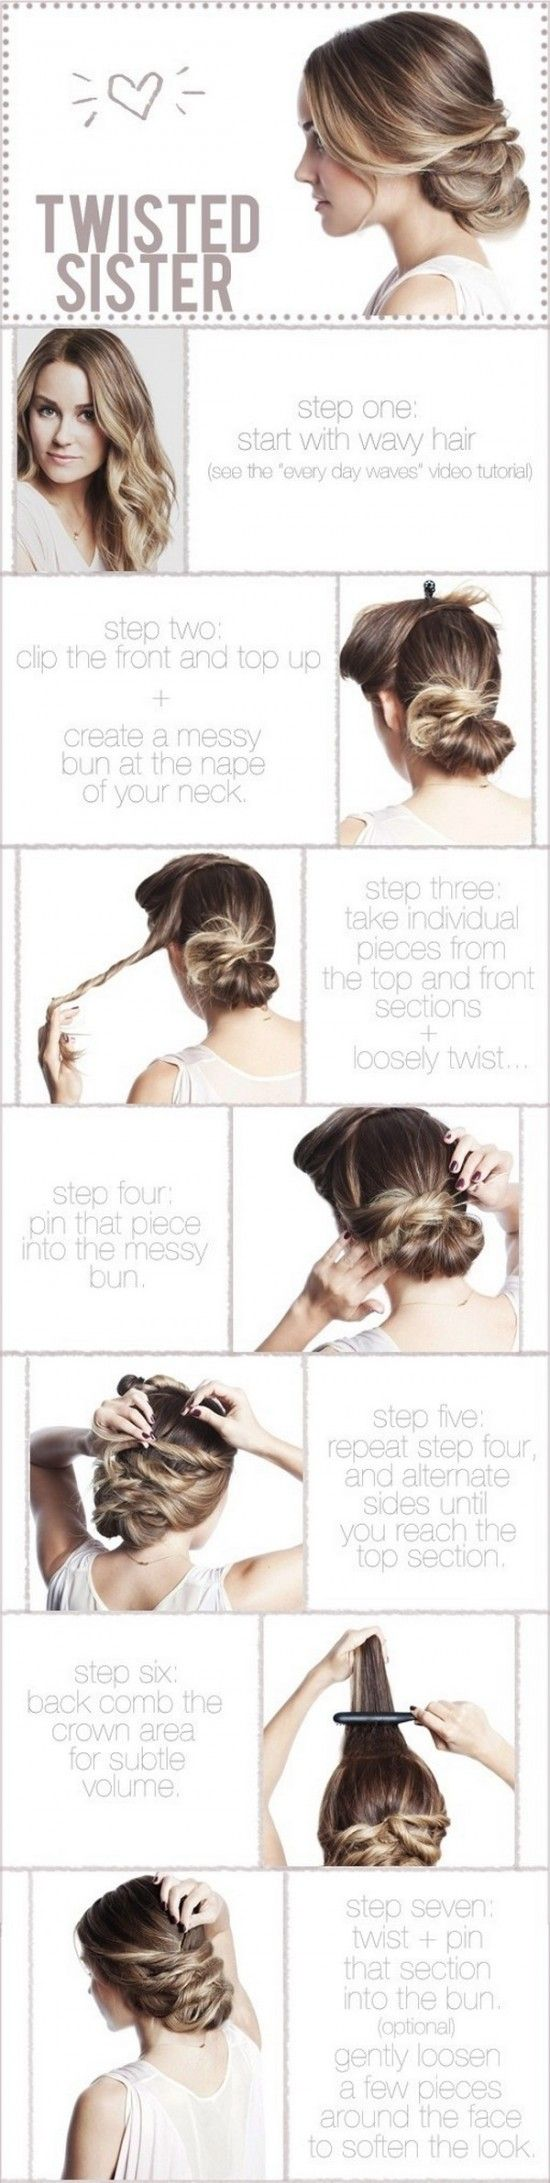 This one's a little complicated|Braided Hair Looks & Ideas|Fall 2013 Hairstyle Trends: Fall 2013 Low Ponytails|Hairstyle Ideas for Teens - Cute Hair Ideas and Hair Style Tips|Hairstyles 2014 | Hairstyles 2013, Haircuts and Hair colors